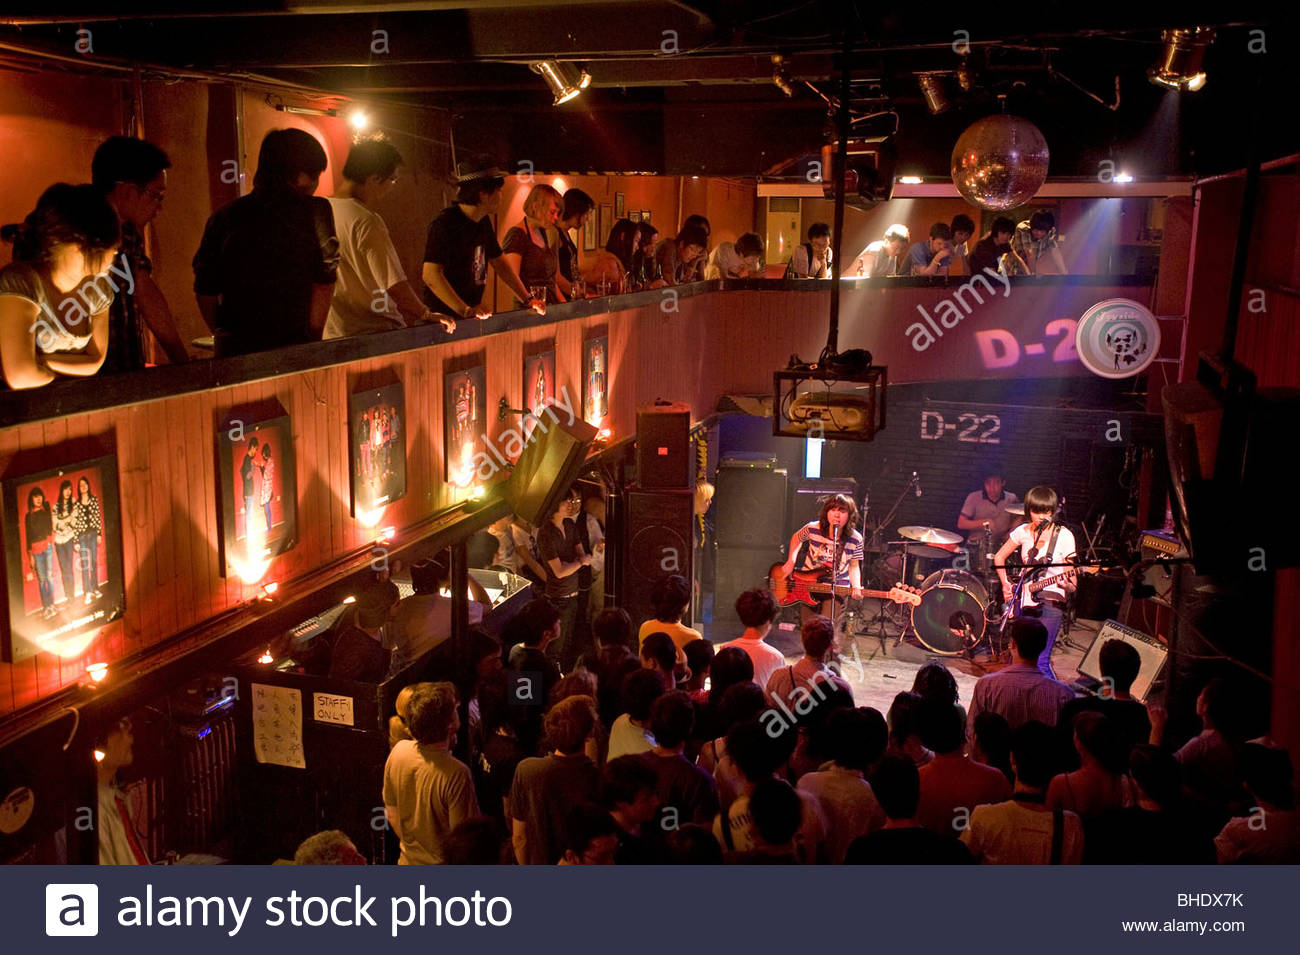 Underground rock scene at the  D22 club with a girls' band called '24 Hours'. Beijing, china - Stock Image